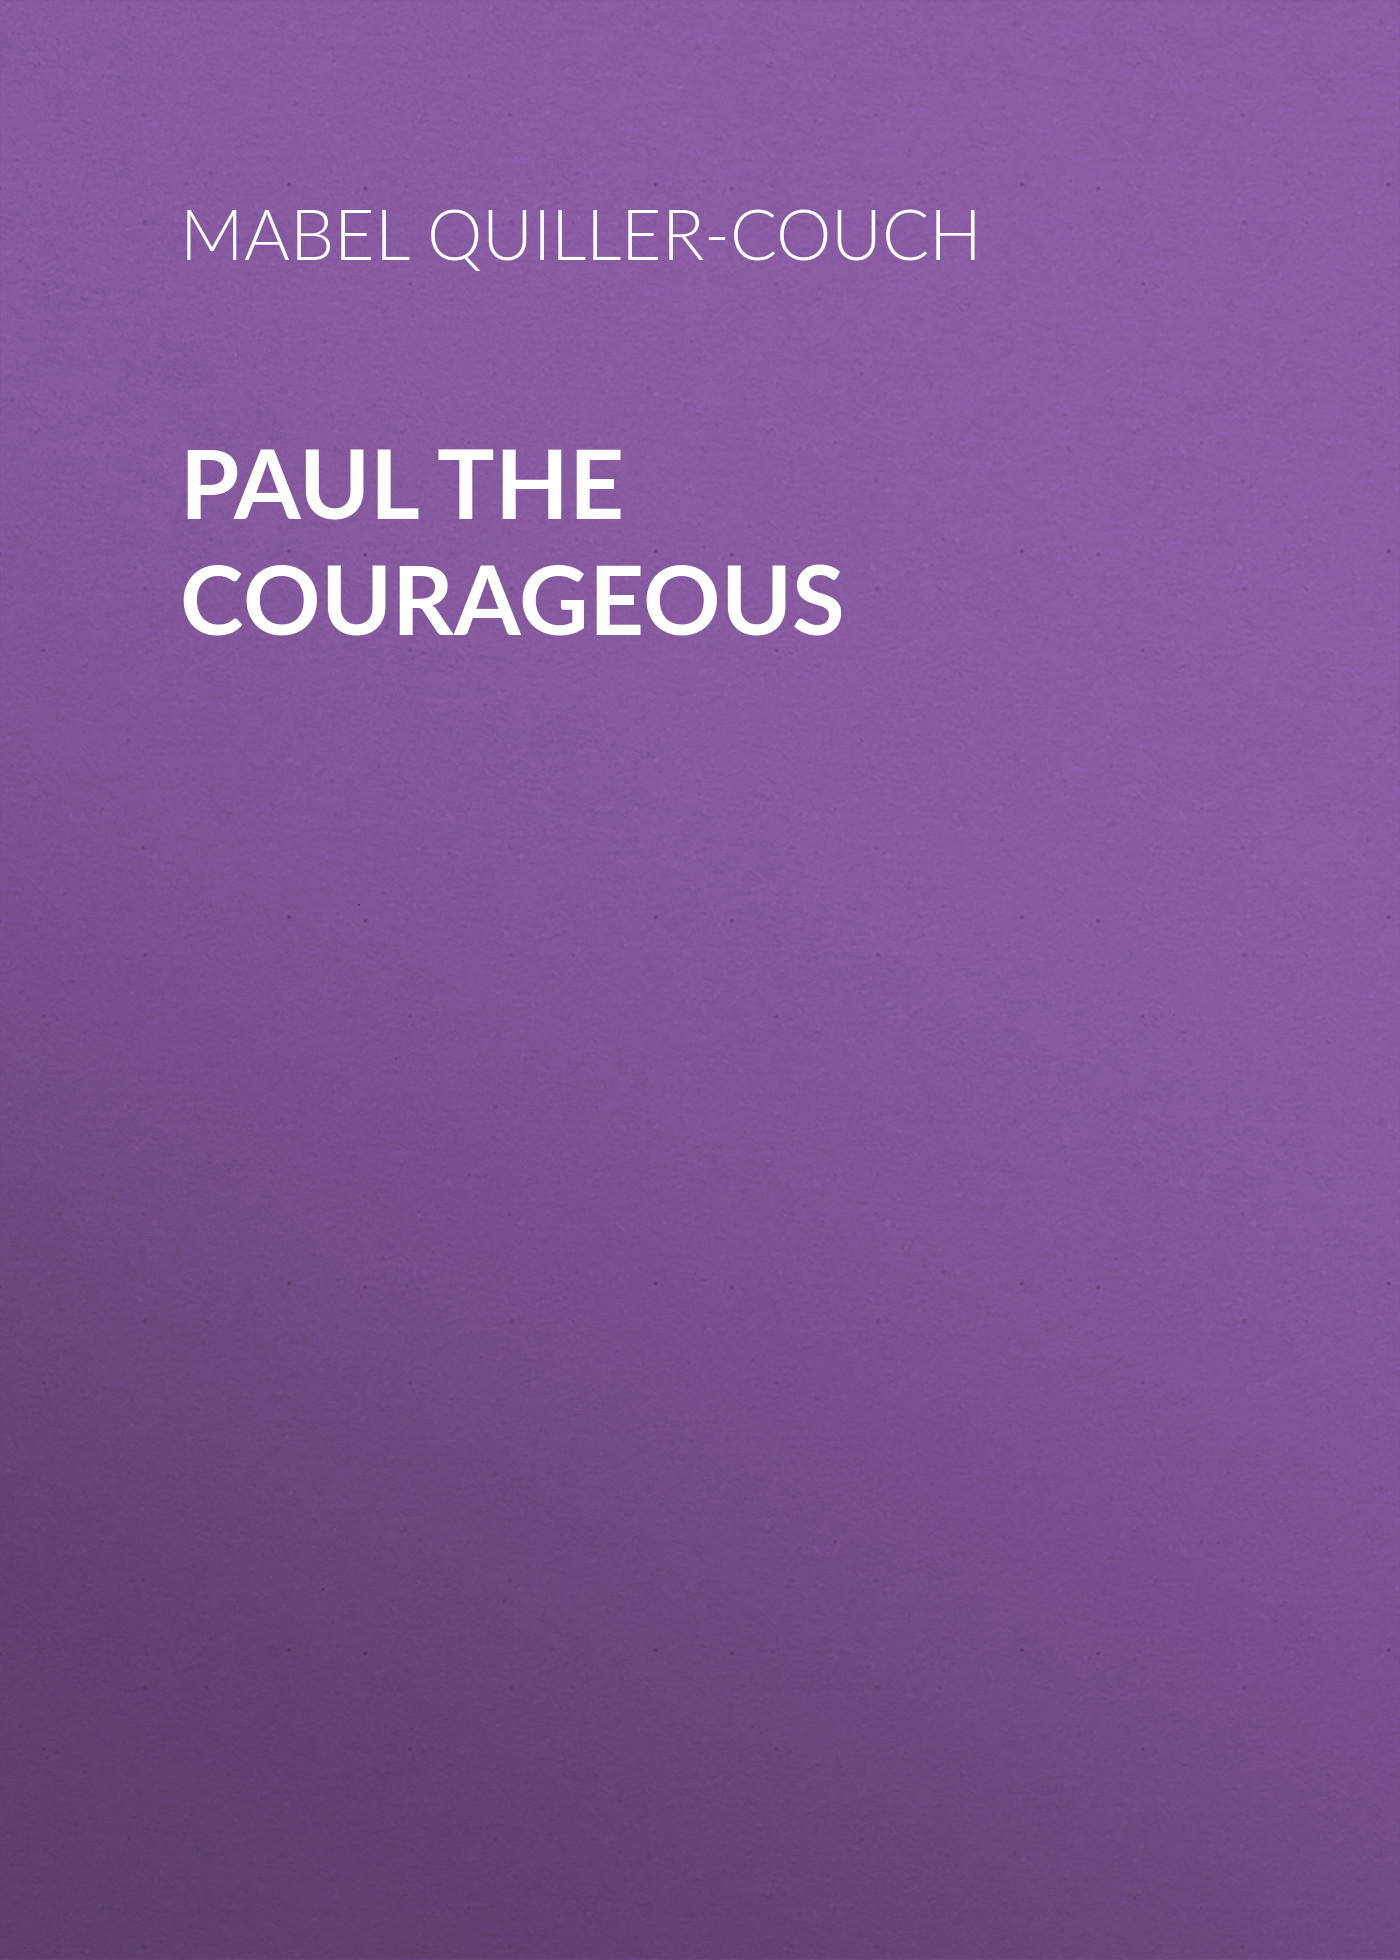 Mabel Quiller-Couch Paul the Courageous